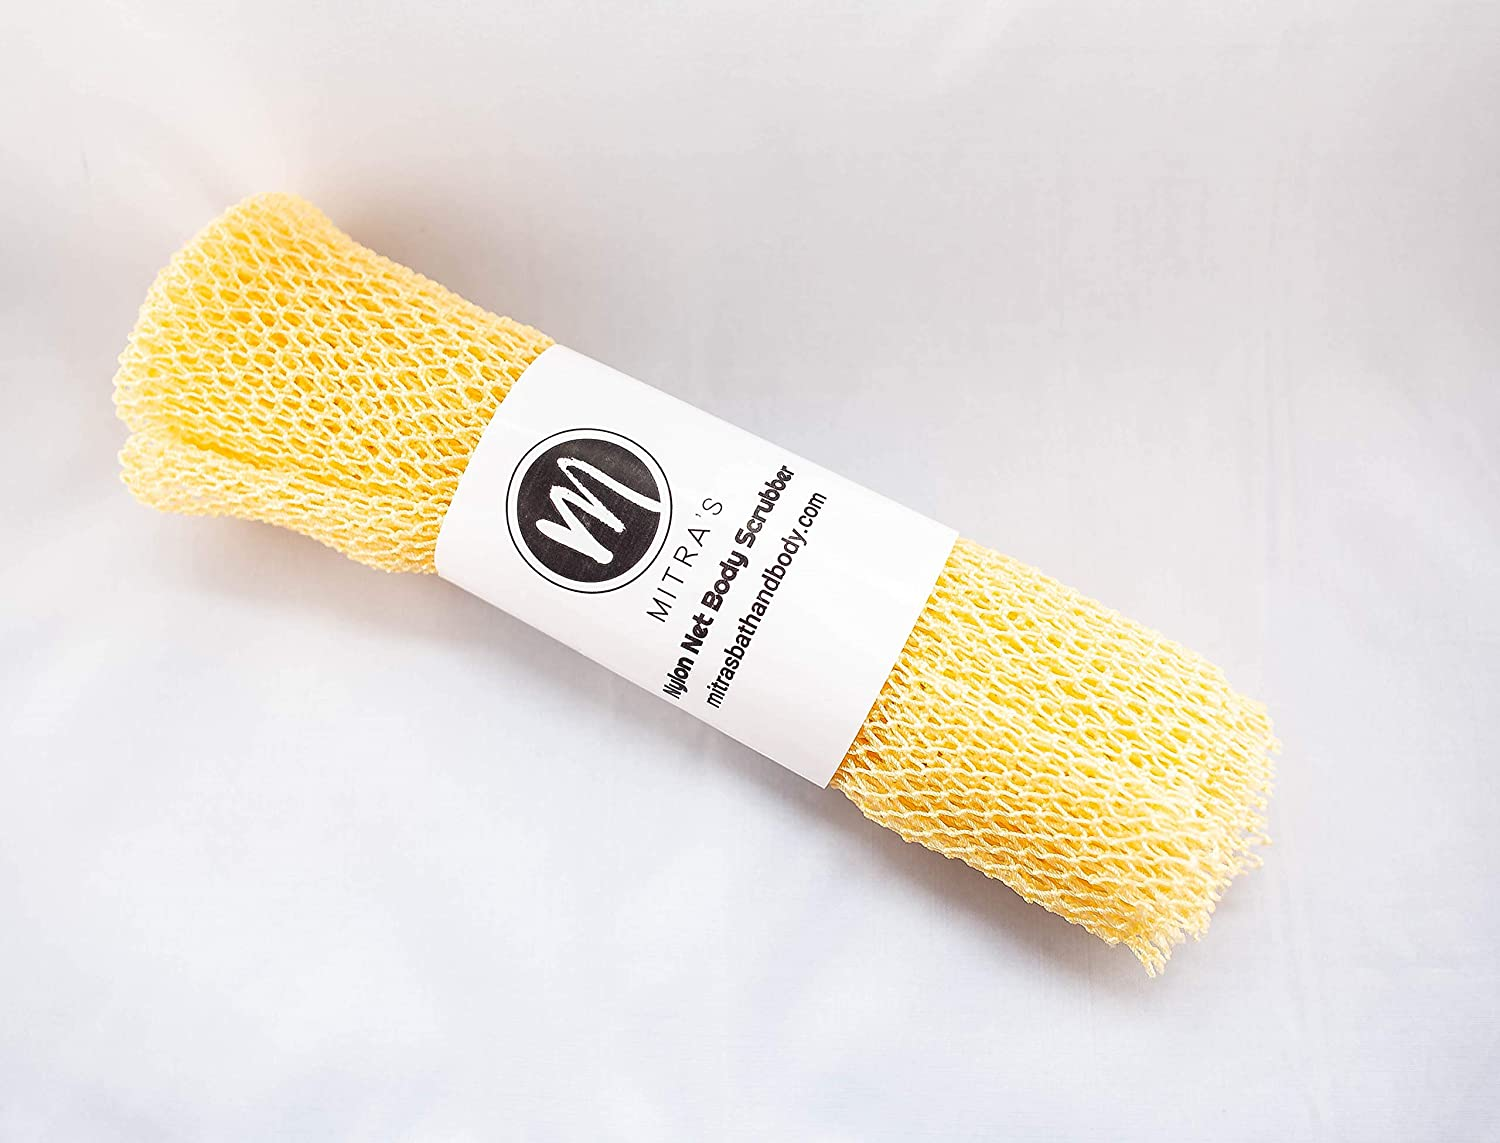 African Net Exfoliating Shower Body Scrubber/Exfoliating Back Scrubber/Skin Smoother/Great for Daily Use - Yellow